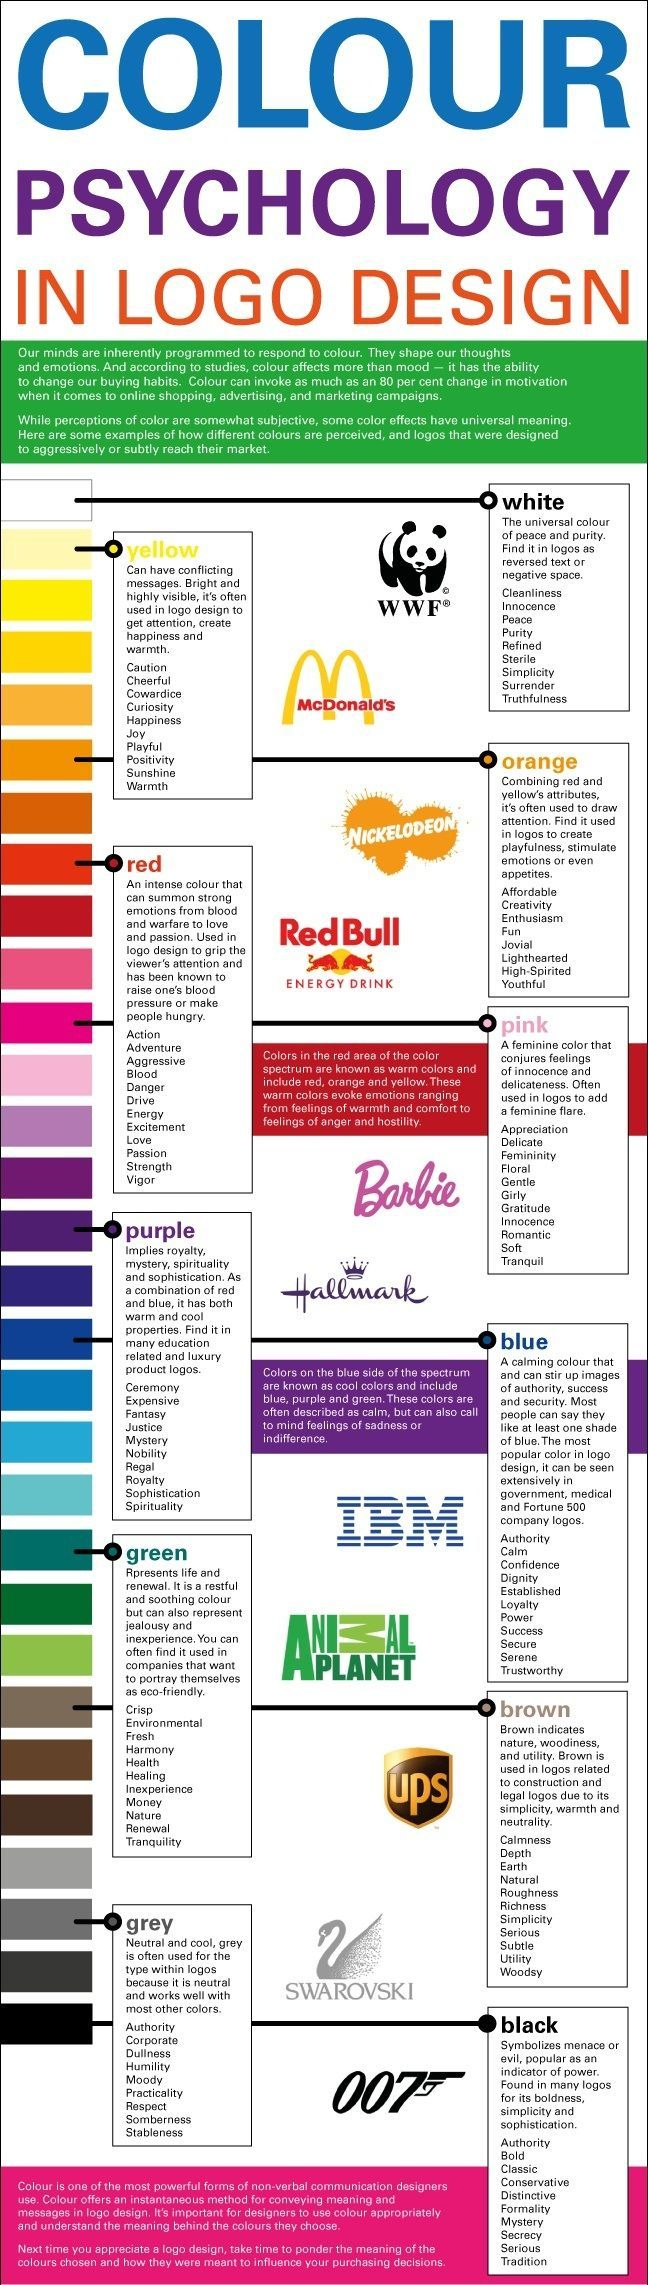 "I chose to look at the color psychology of logos because it's really interesting to relate colors to why certain companies chose their specific logos. Purple is a color that stands out to me, and I never realized that companies would use it to describe themselves as ""royal"", but Hallmark does a great job of incorporating a deep purple and the crown in their logo."